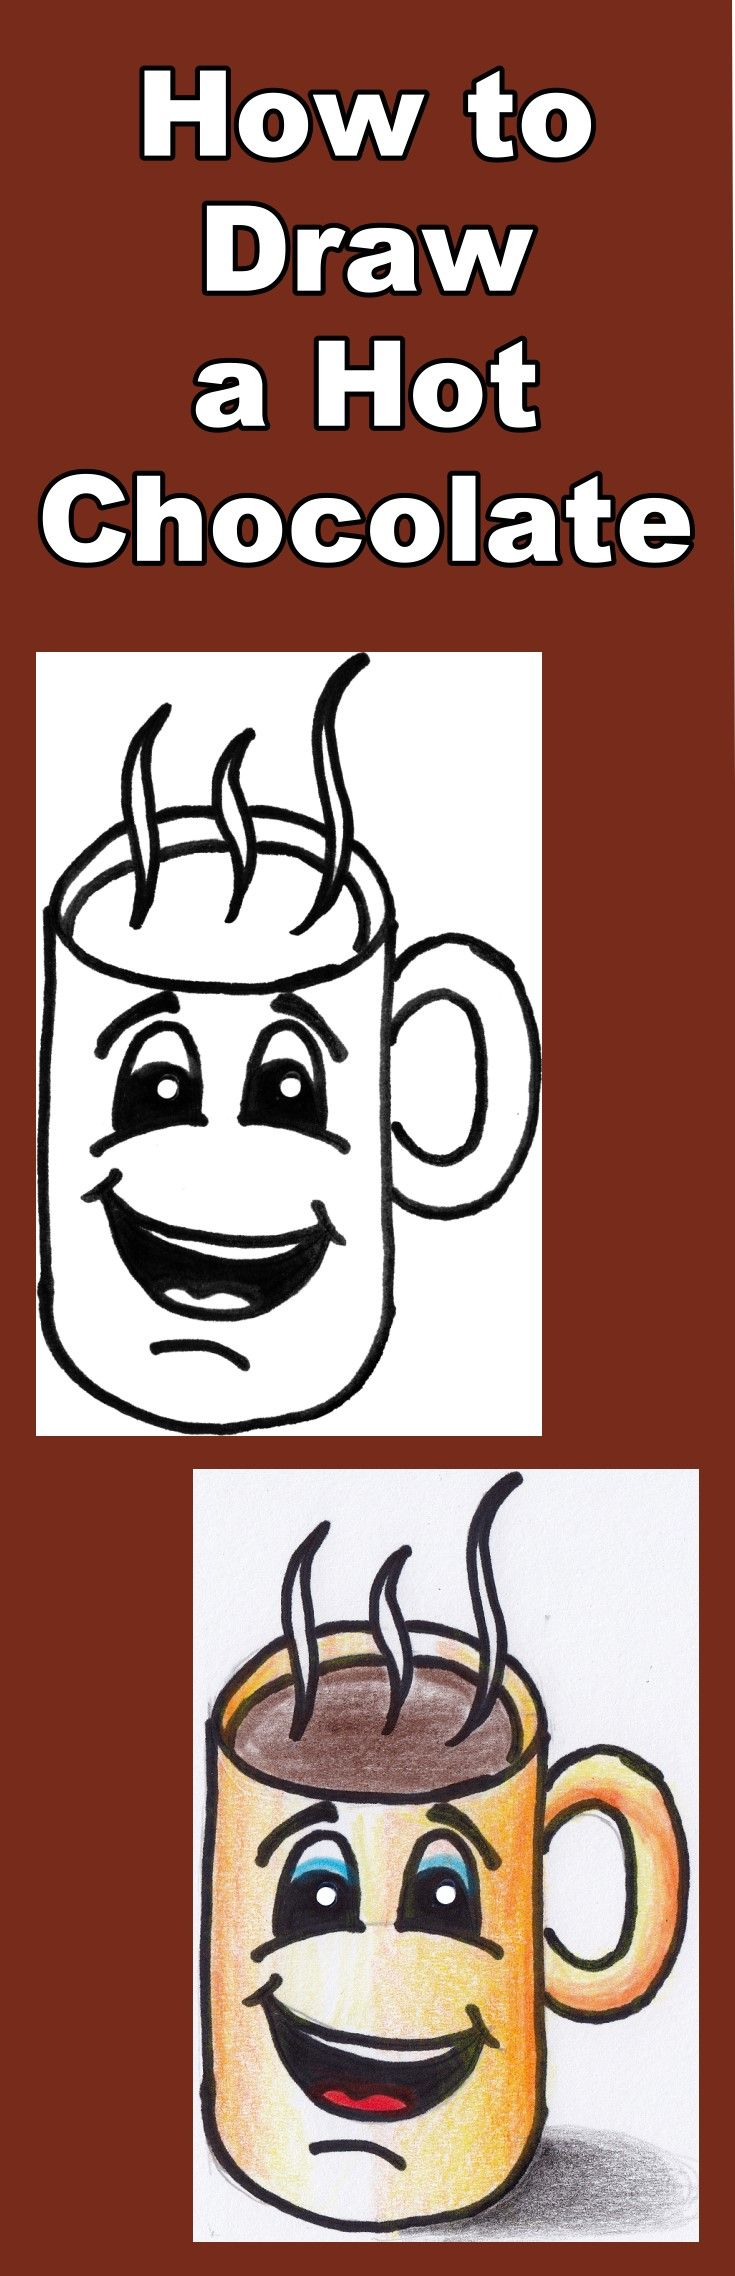 Follow the video as you learn how to draw and then color this yummy hot chocolate cartoon. Includes a free downloadable coloring page.